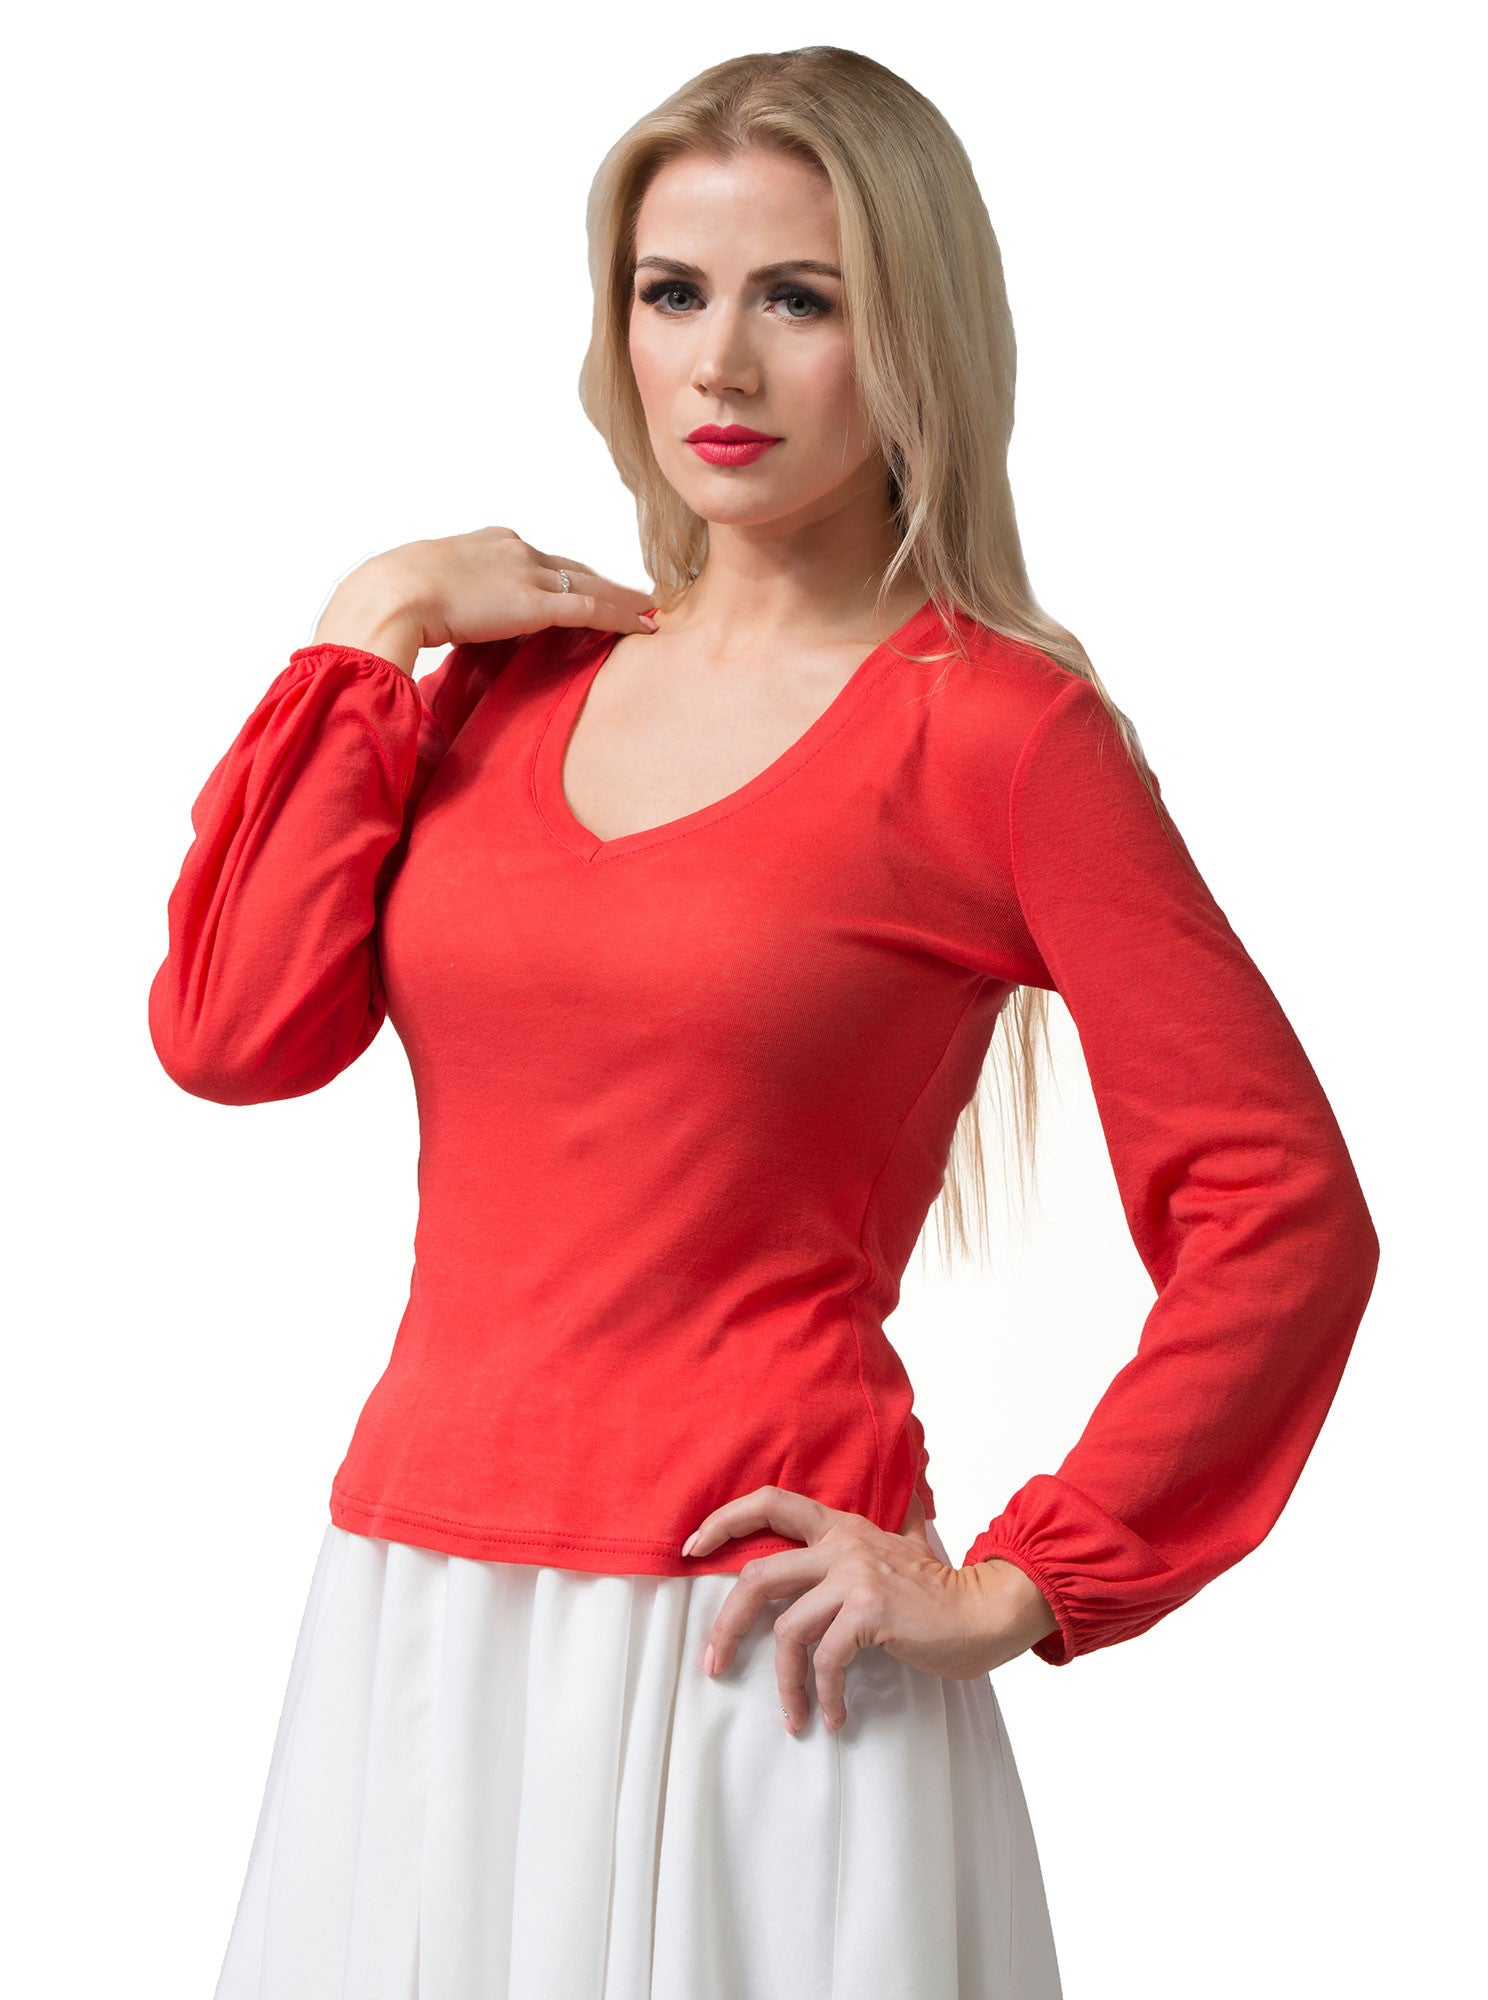 PIRGIT Organic Cotton Strawberry Red Blouse